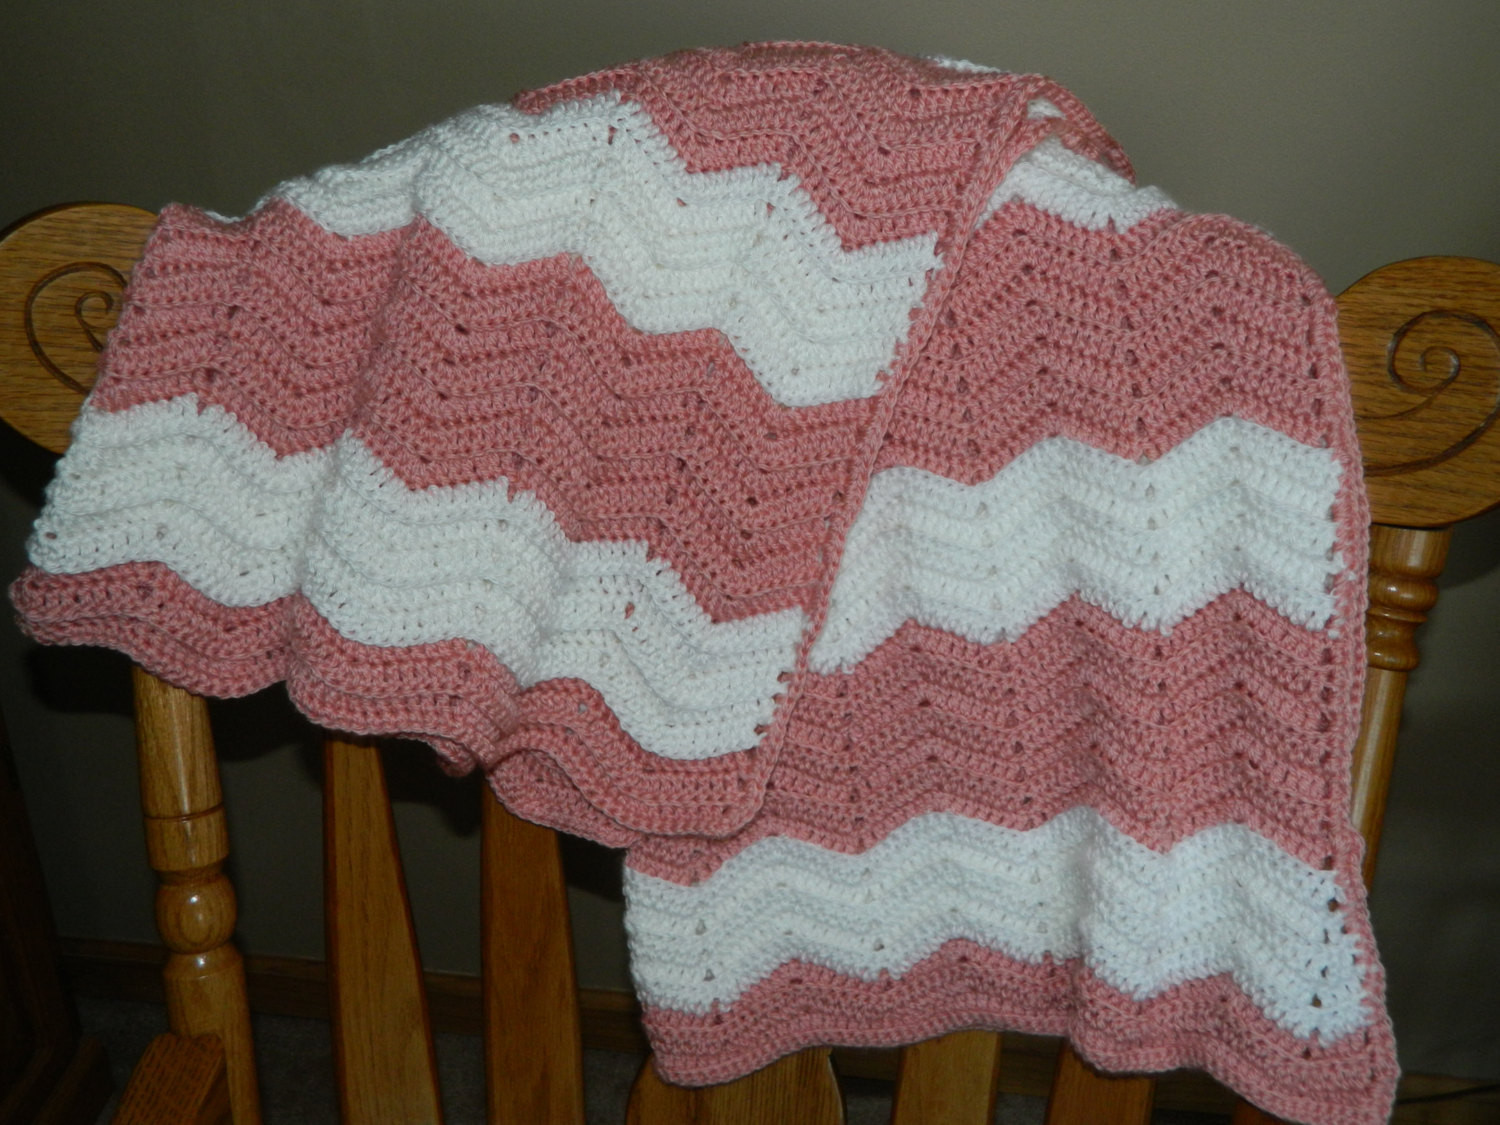 Bernat Crochet Blanket New New Hand Crochet Wavy Ripple Pastel Afghan Blanket Bernat Of Incredible 49 Images Bernat Crochet Blanket